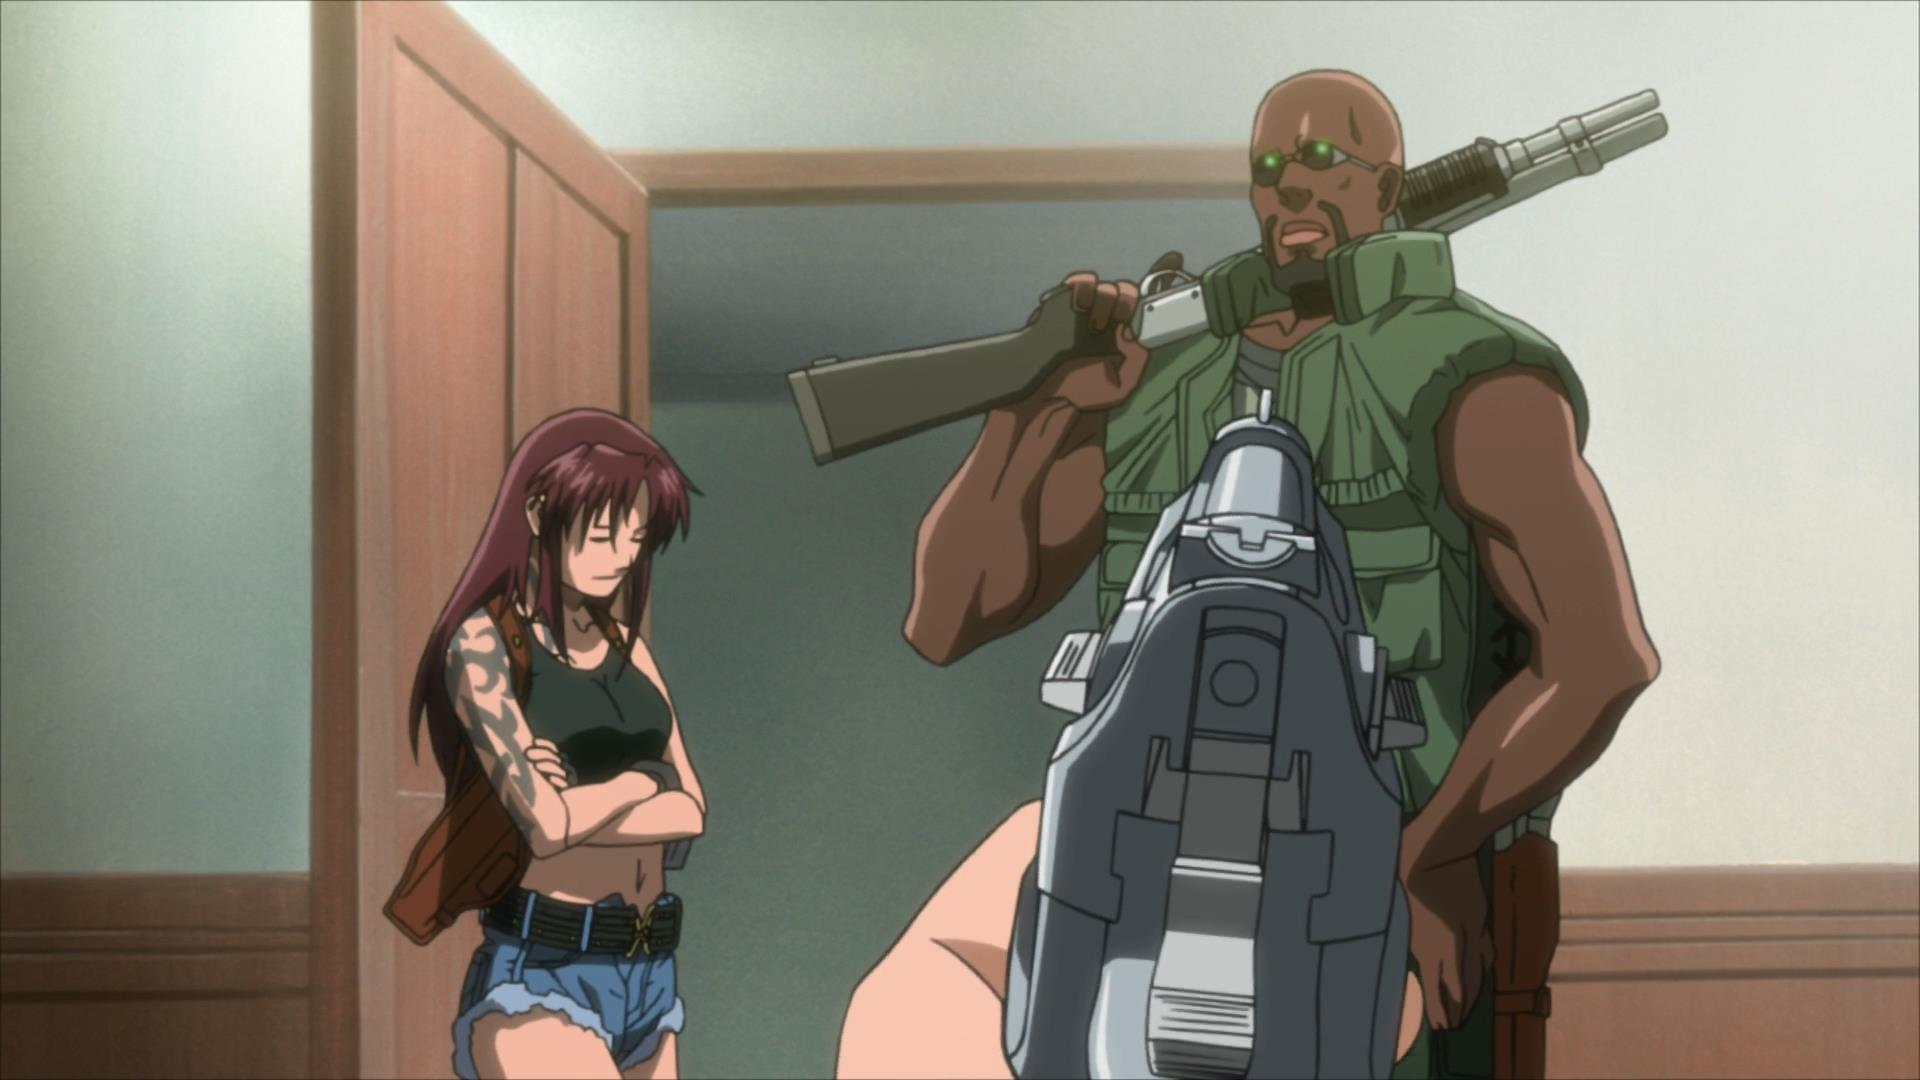 (Left to Right) Revy and Dutch casually encountering a person with a gun.